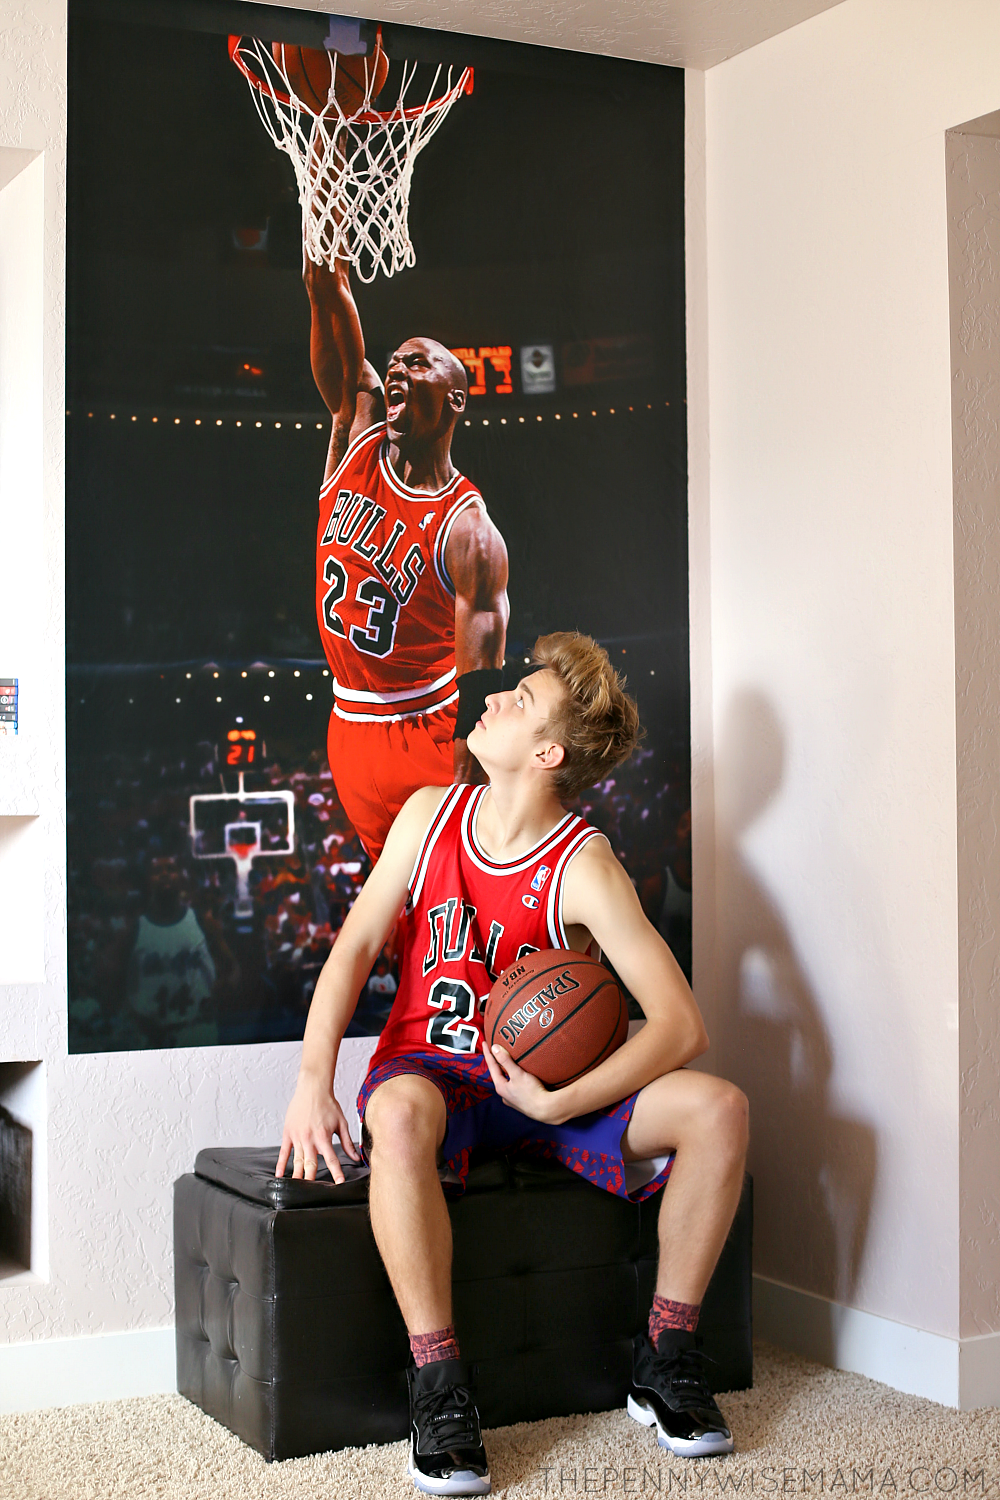 Fathead - The Ultimate Gift for the Sports Fan